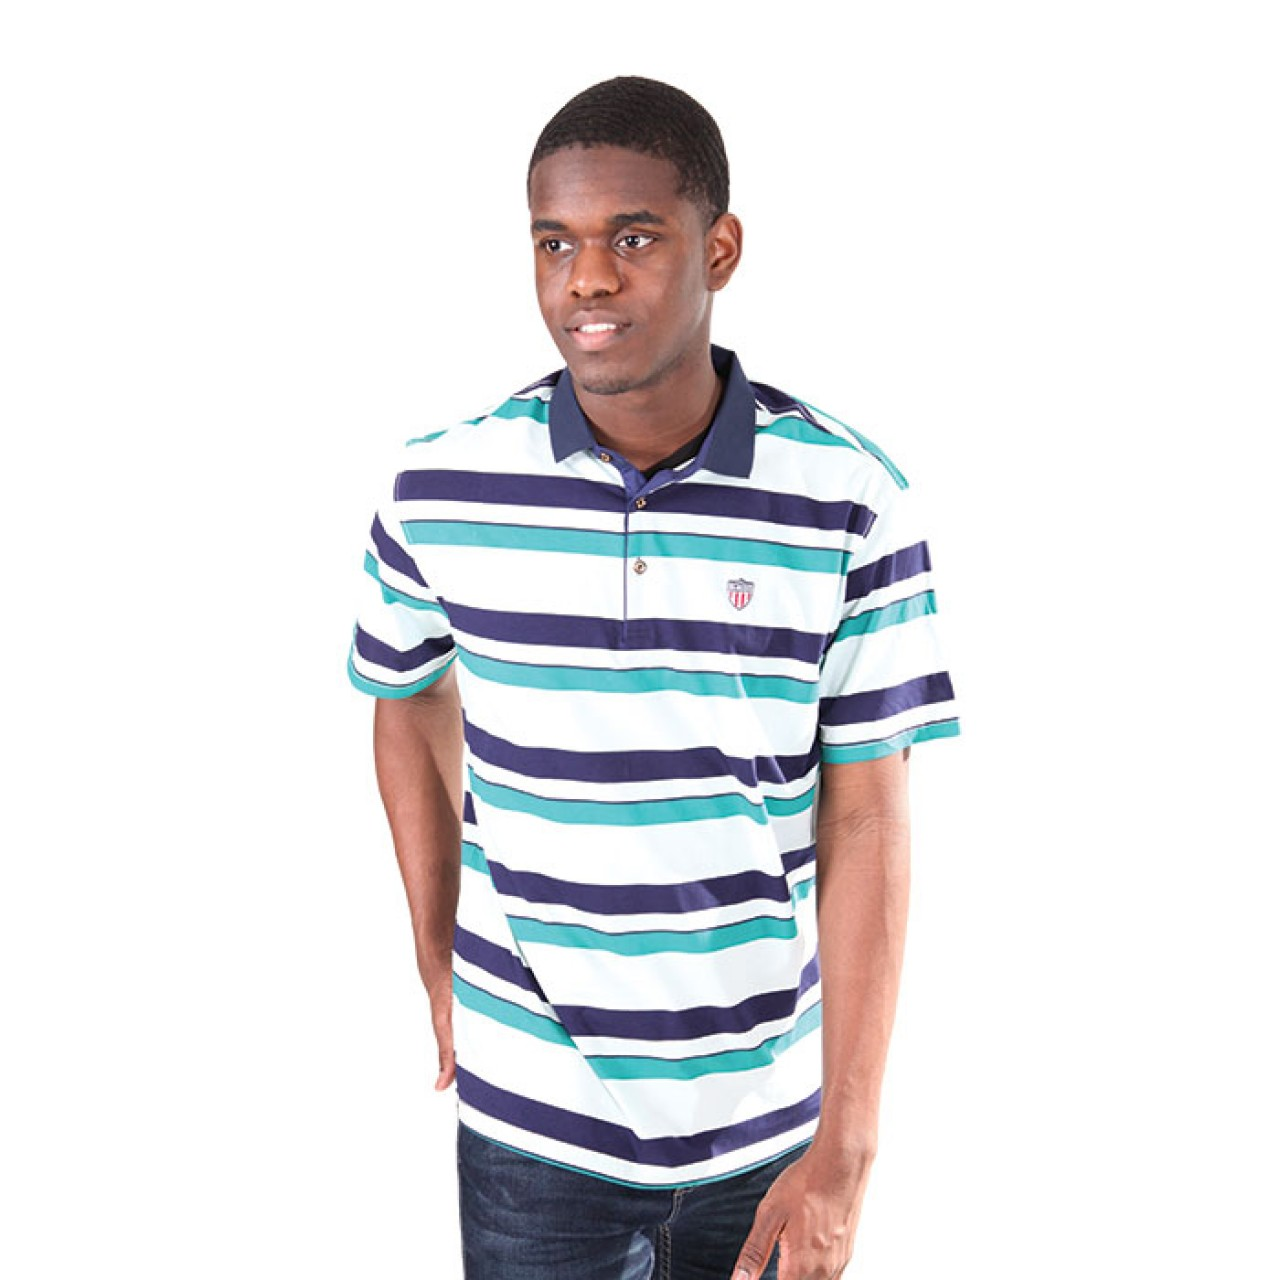 Men's Striped Classic Navy collared Polo Tee Shirt